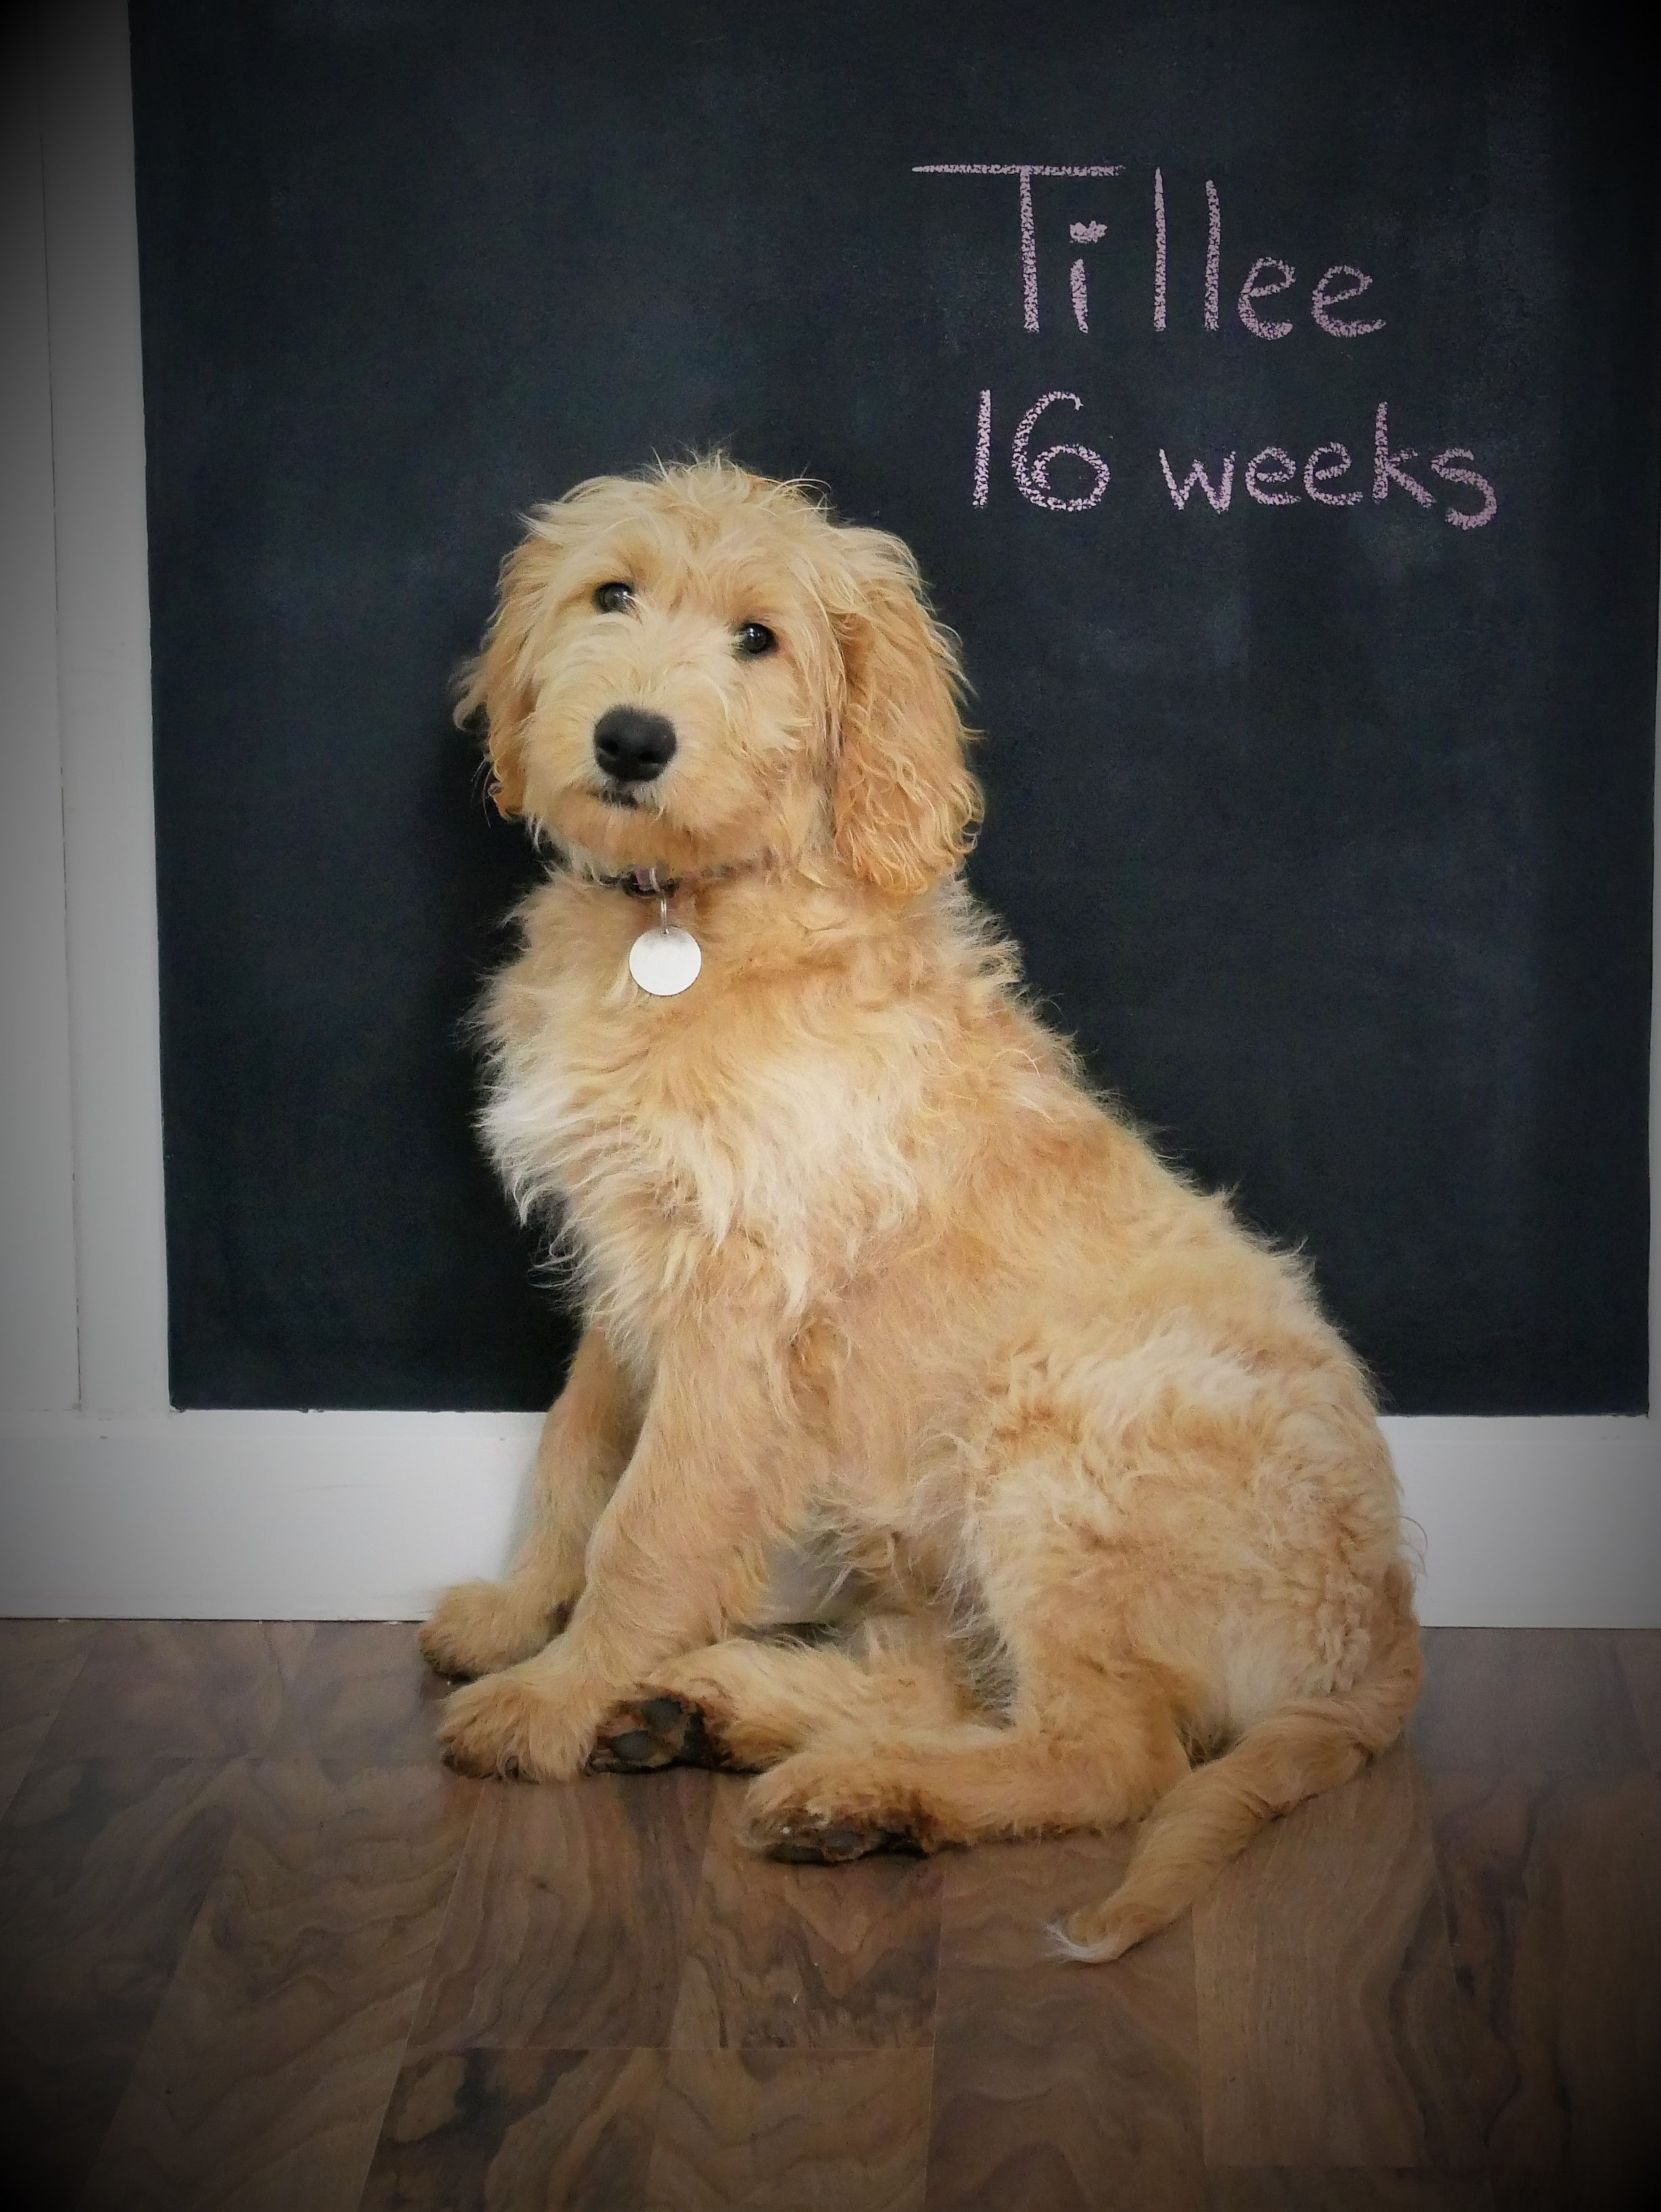 My Beautiful Groodle Goldendoodle Tillee At 16 Weeks